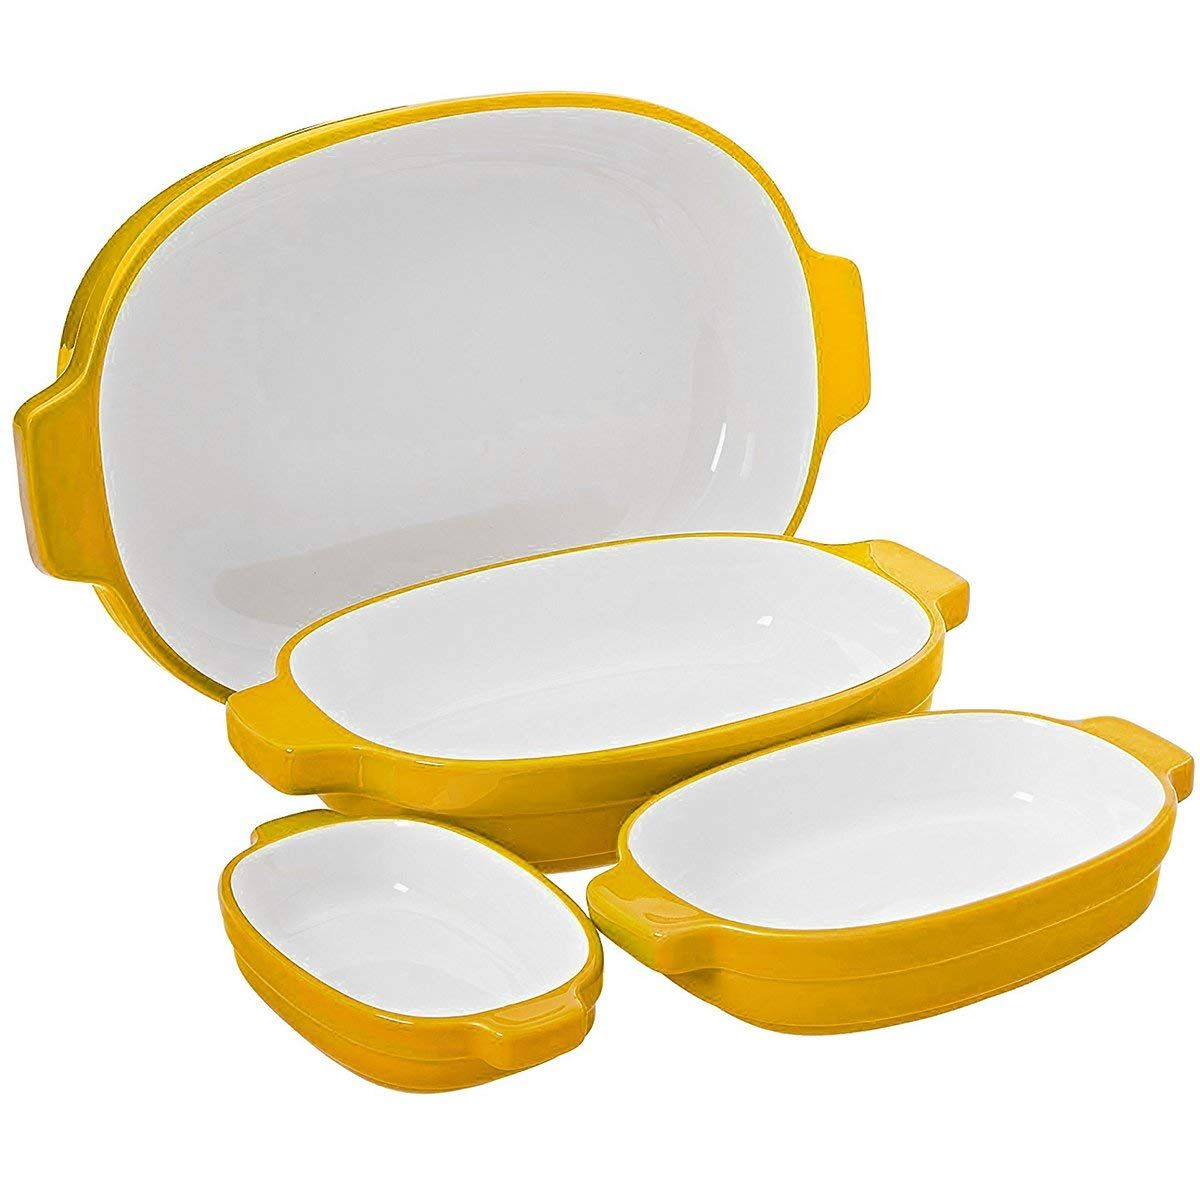 Add Cheery To Your Meals This Set Is On My Wish List If You